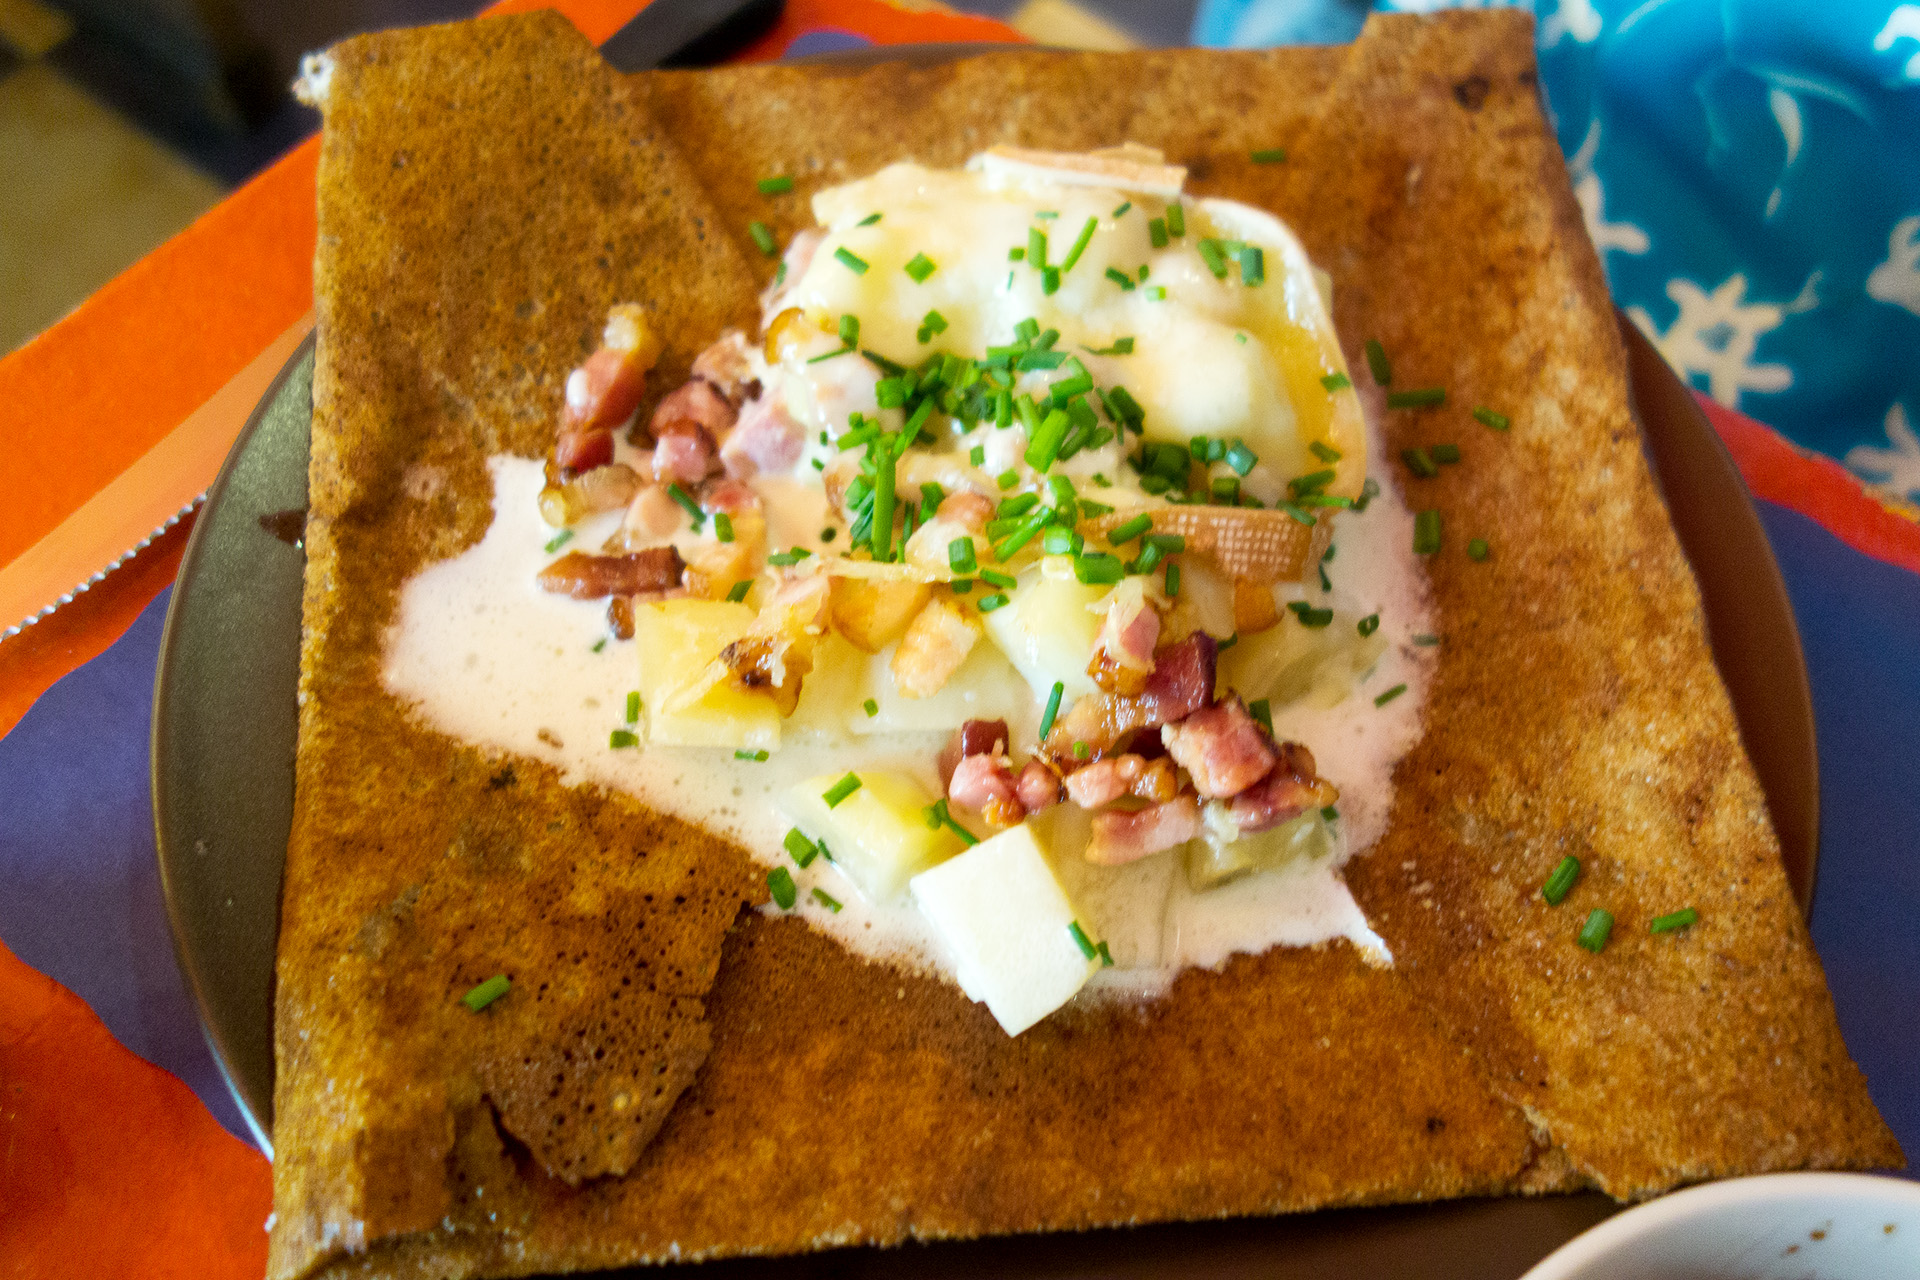 Crepe deliciousness. Potatoes, multiple kinds of cheese and bacon.